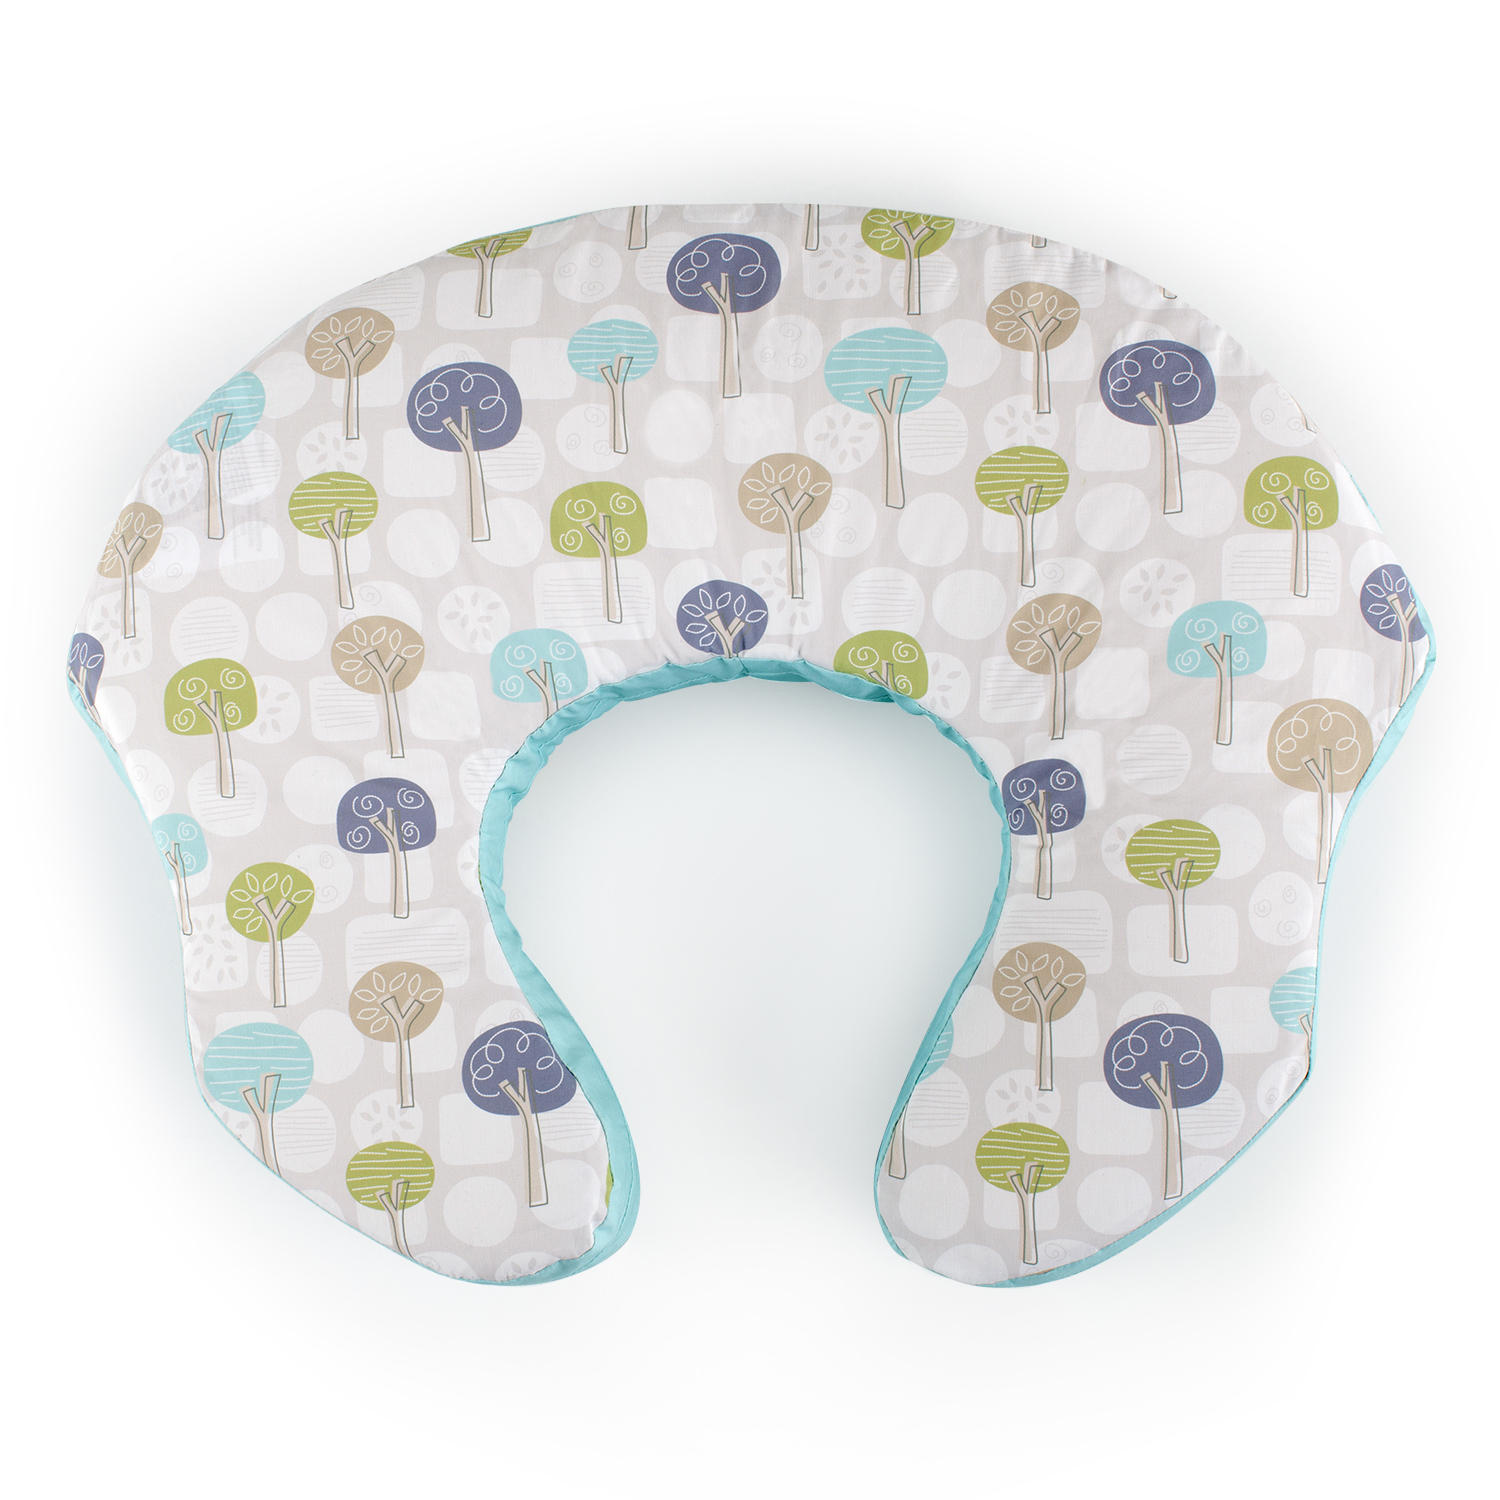 mombo™ Covered Nursing Pillow - Forest Mist™